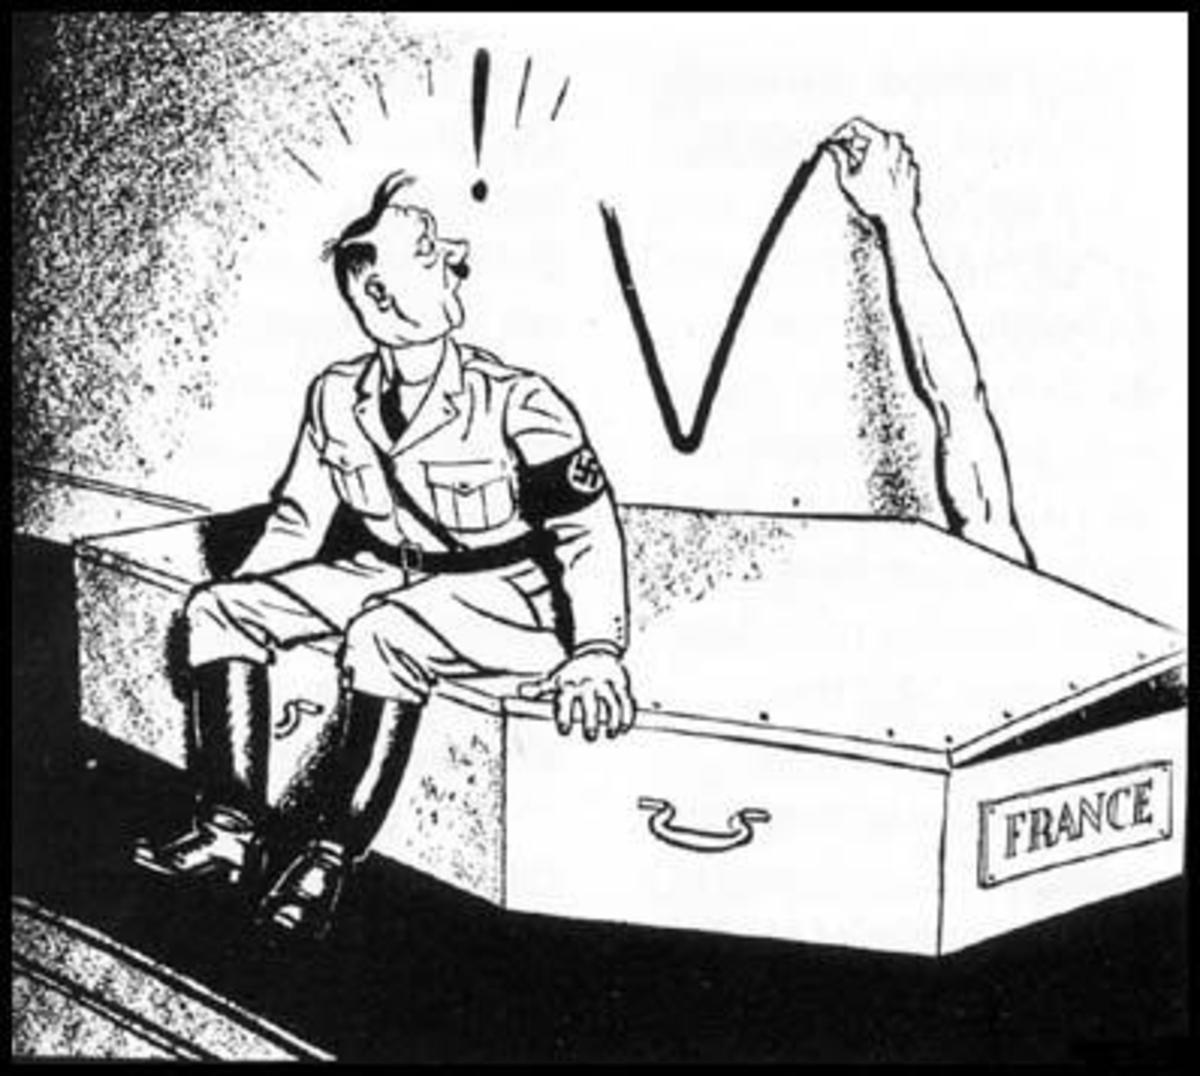 A Joke Showing The Existence Of French Resistance